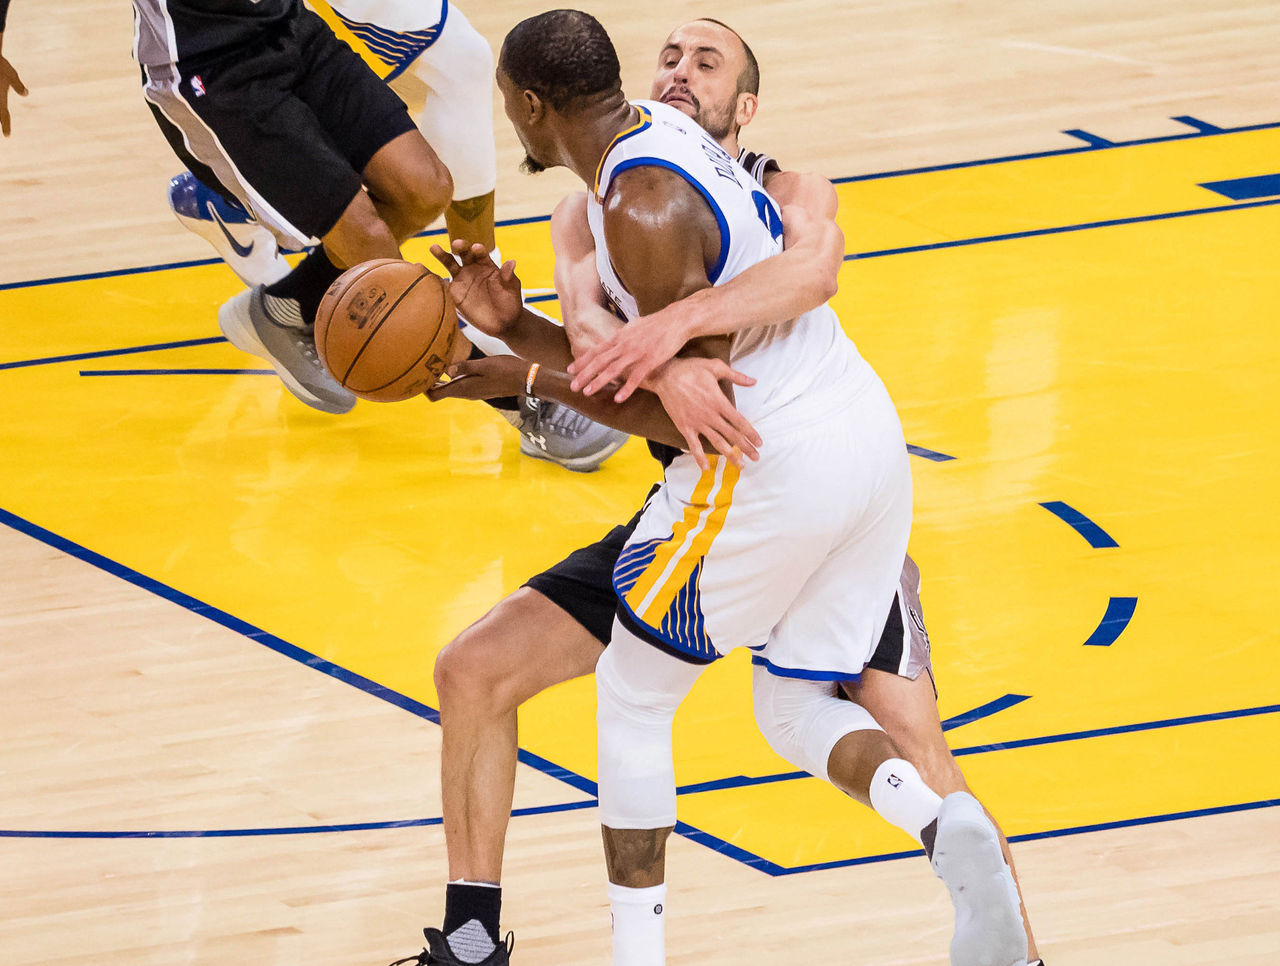 Cropped 2017 05 14t211843z 244227155 nocid rtrmadp 3 nba playoffs san antonio spurs at golden state warriors